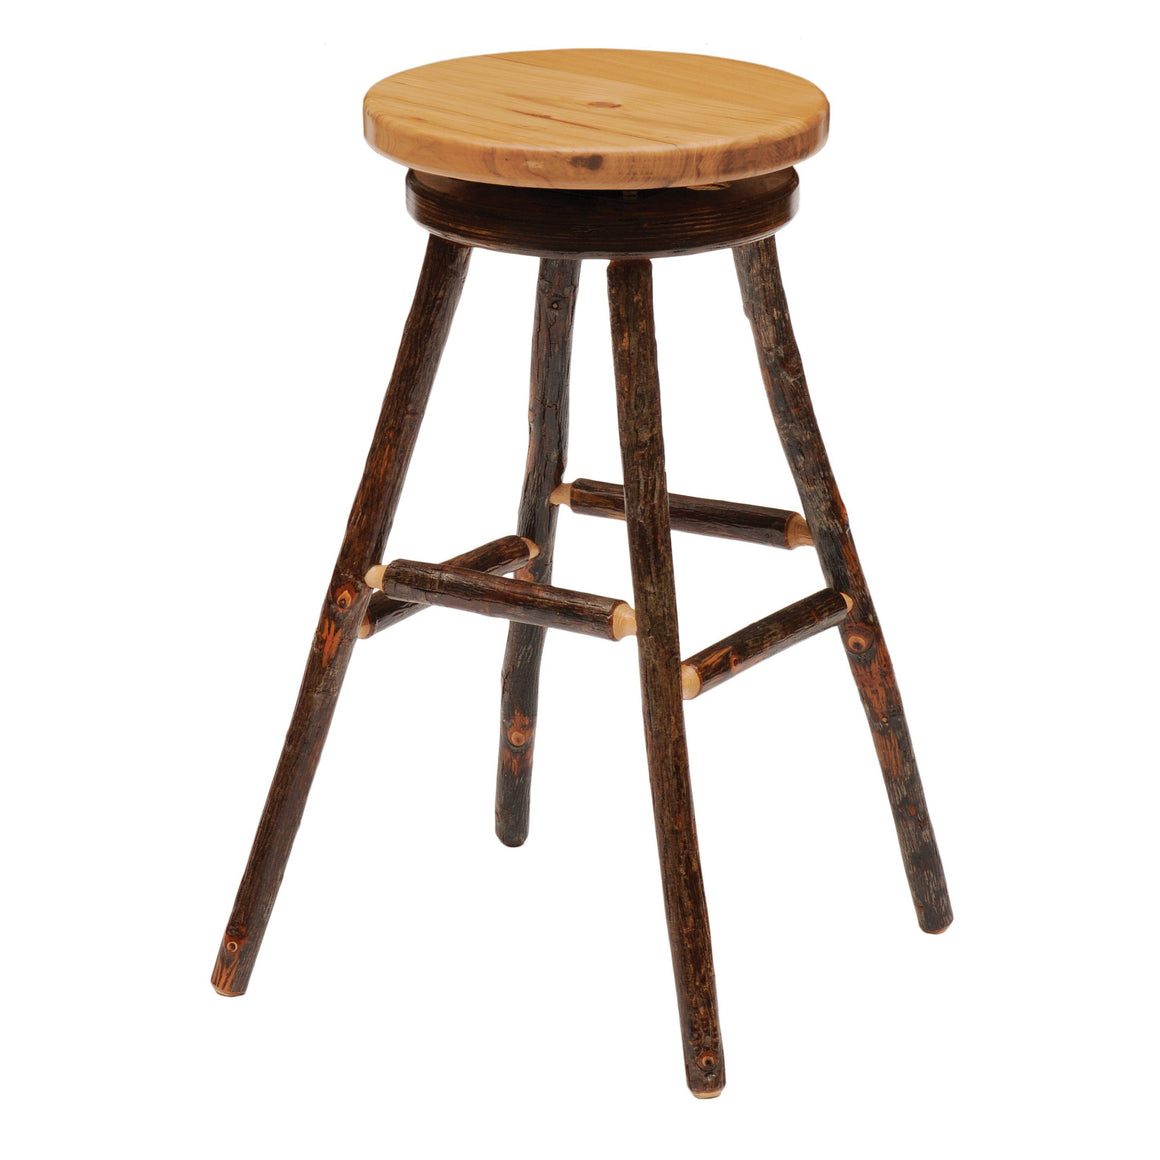 "Natural Log Round Swivel Bar Stool - 30"" high - Standard Finish - Rustic Deco Incorporated"